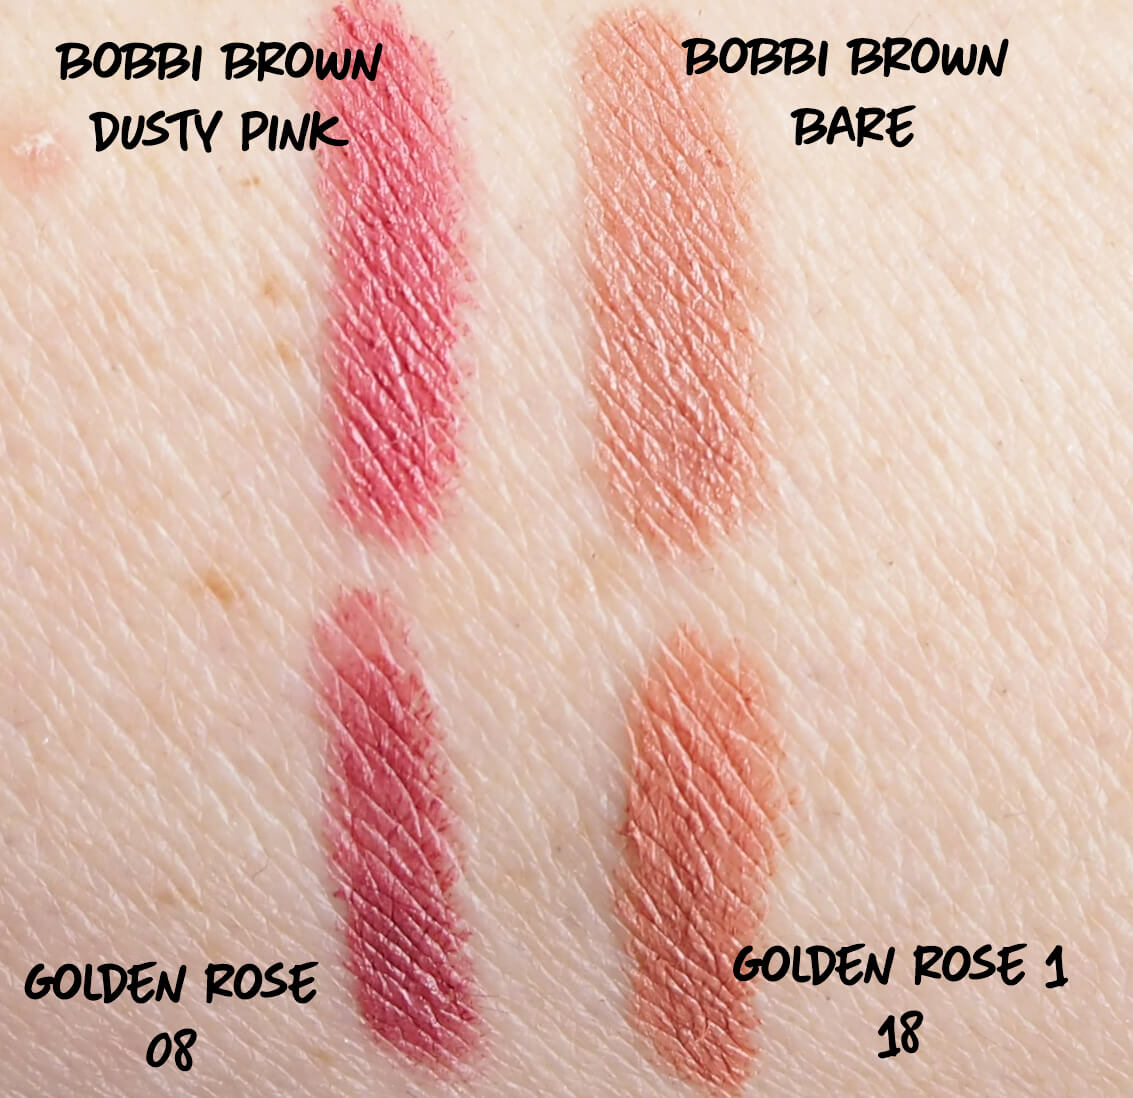 Porówanie GOLDEN ROSE MATTE LIPSTICK CRAYON do Bobbi Brown ART STICK